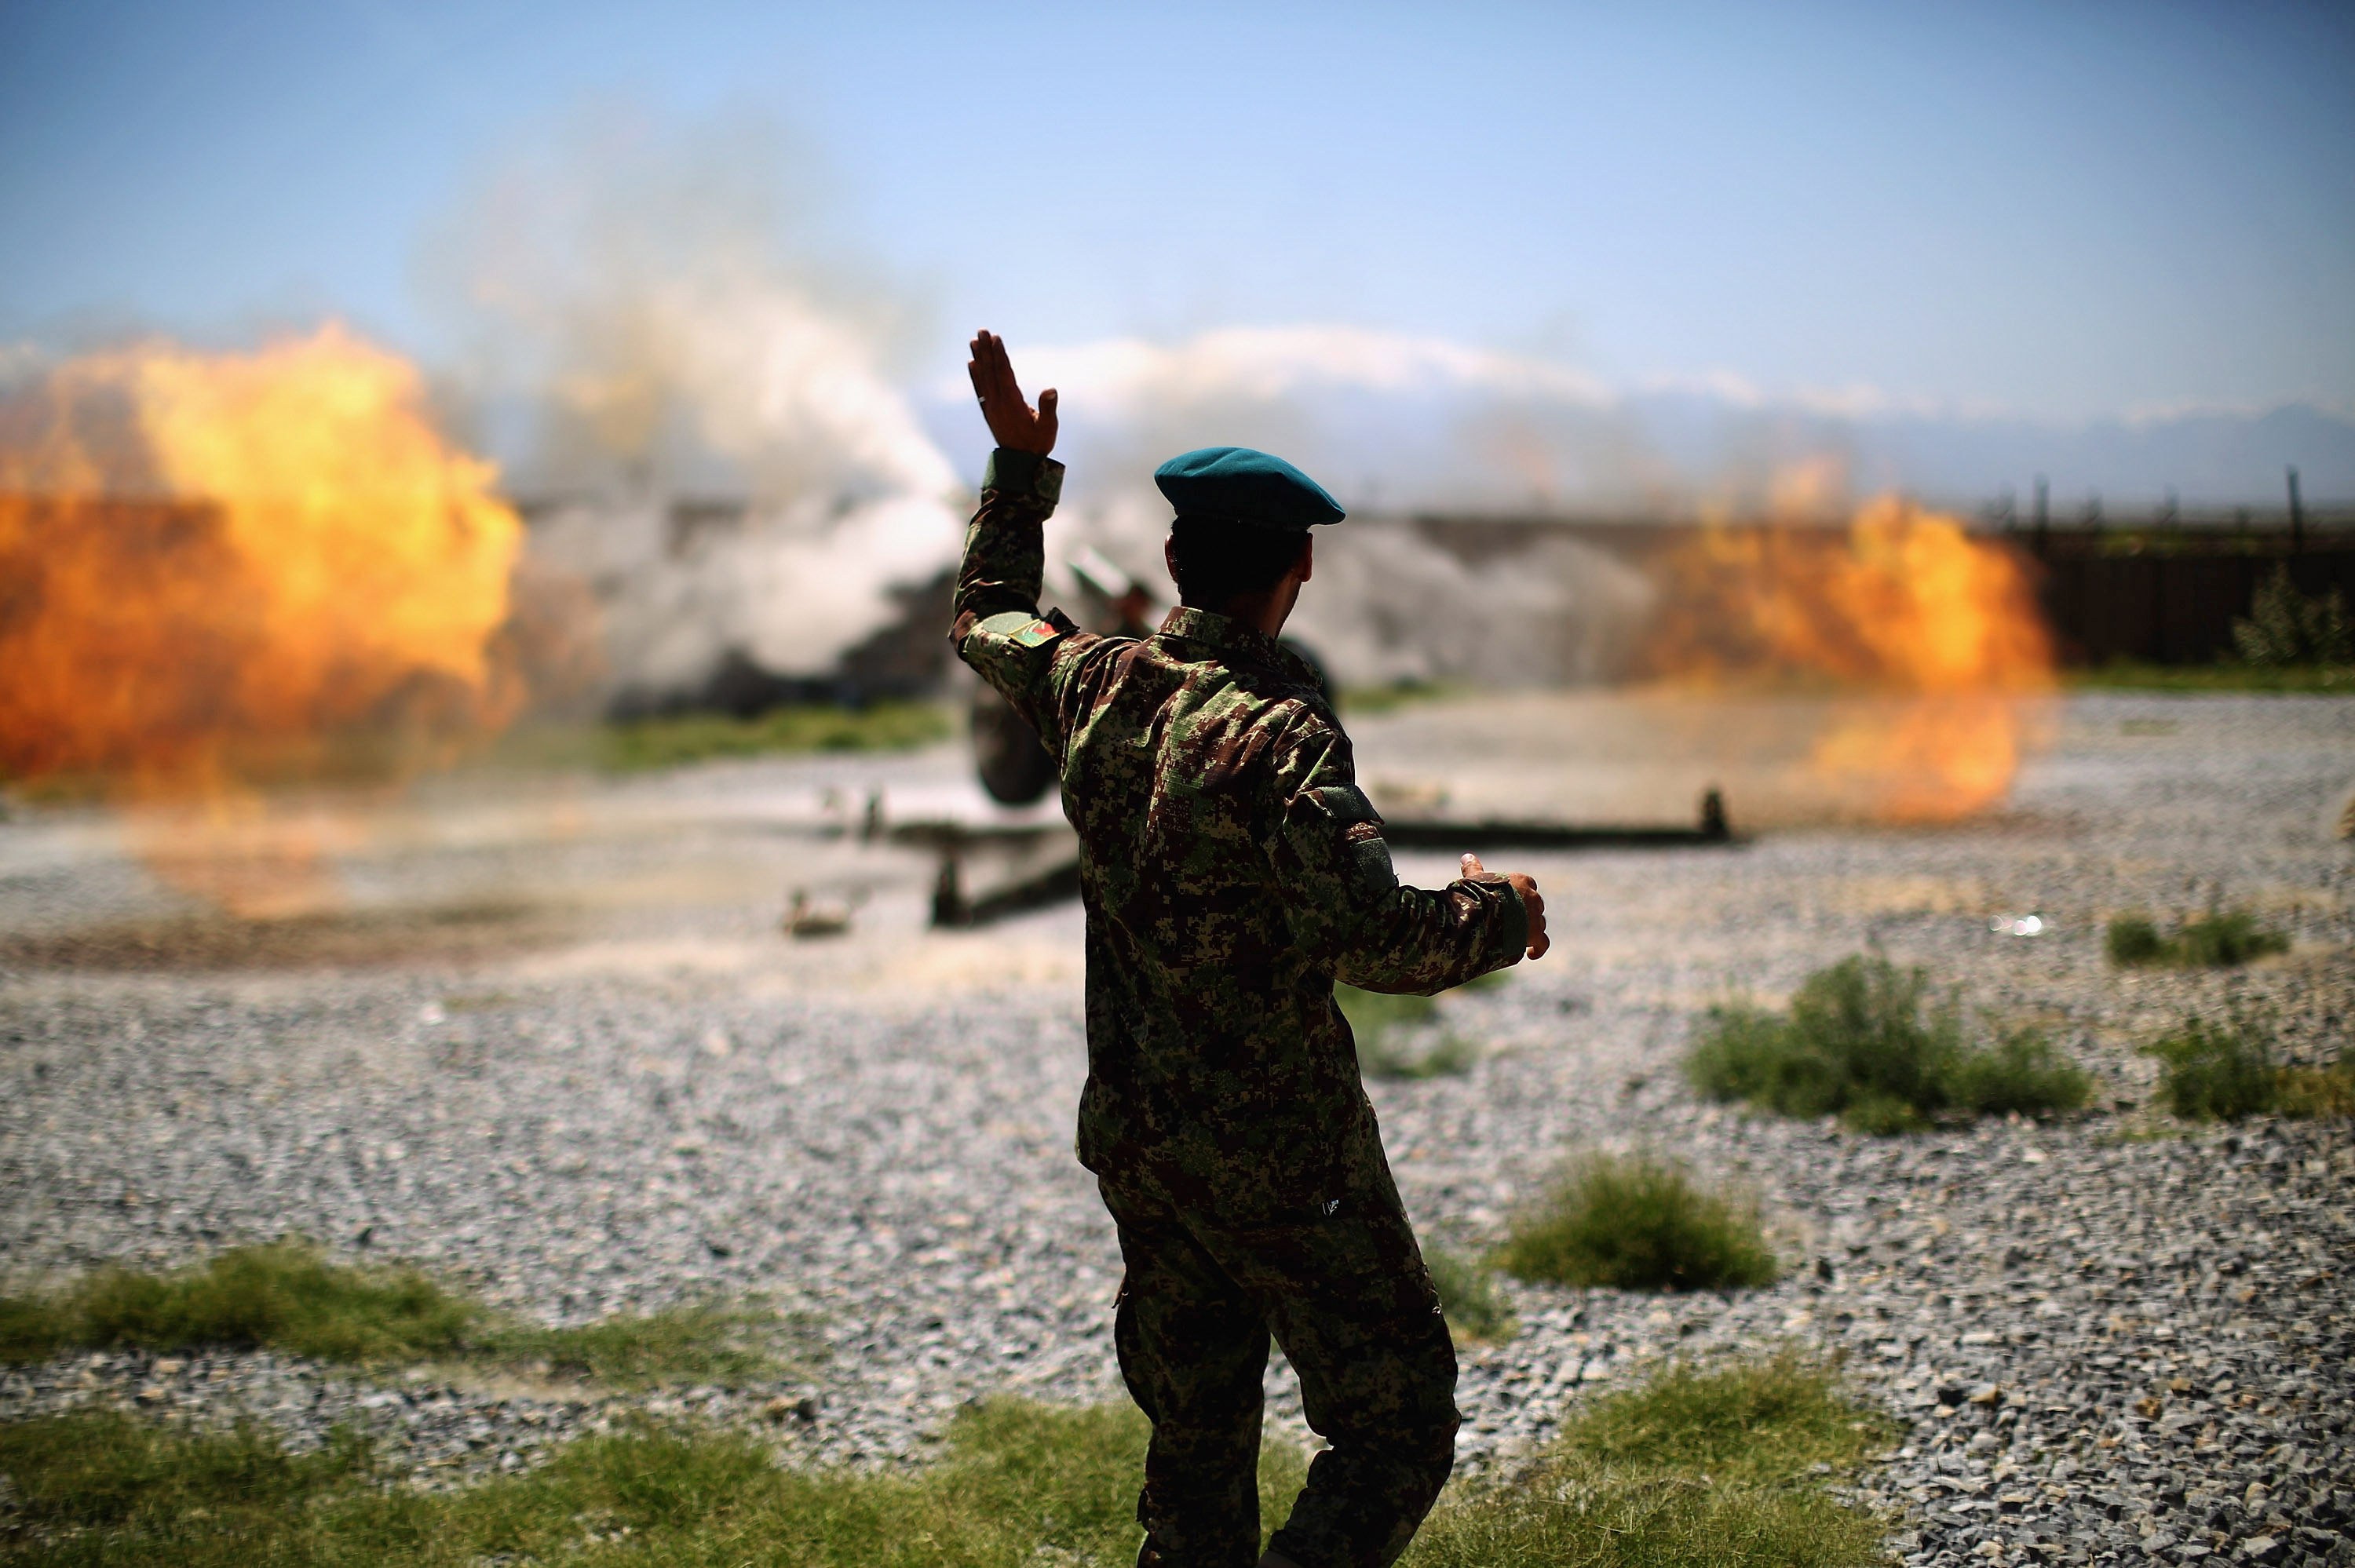 An artillery gun fires a round at Taliban fighters in the hills of Nangahar Province. (Photo by David Gilkey/NPR)